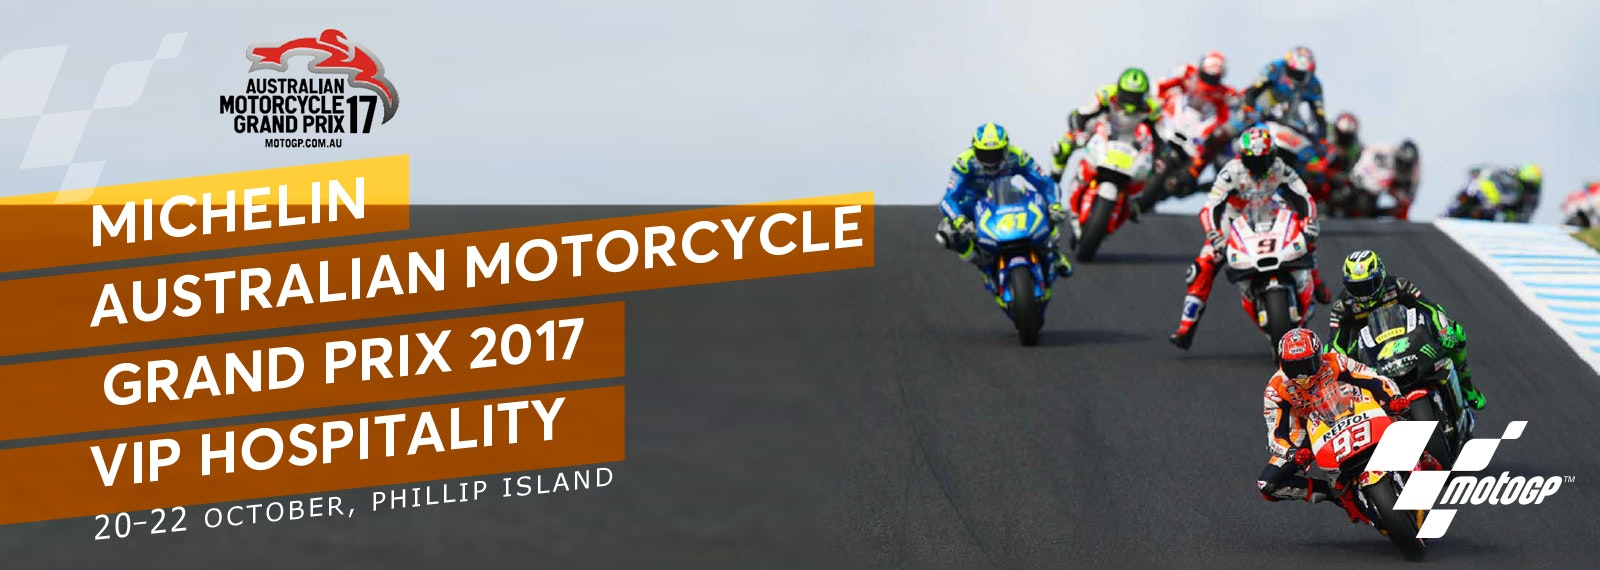 Michelin® Australian Motorcycle Grand Prix 2017 Tickets, Packages & Experiences